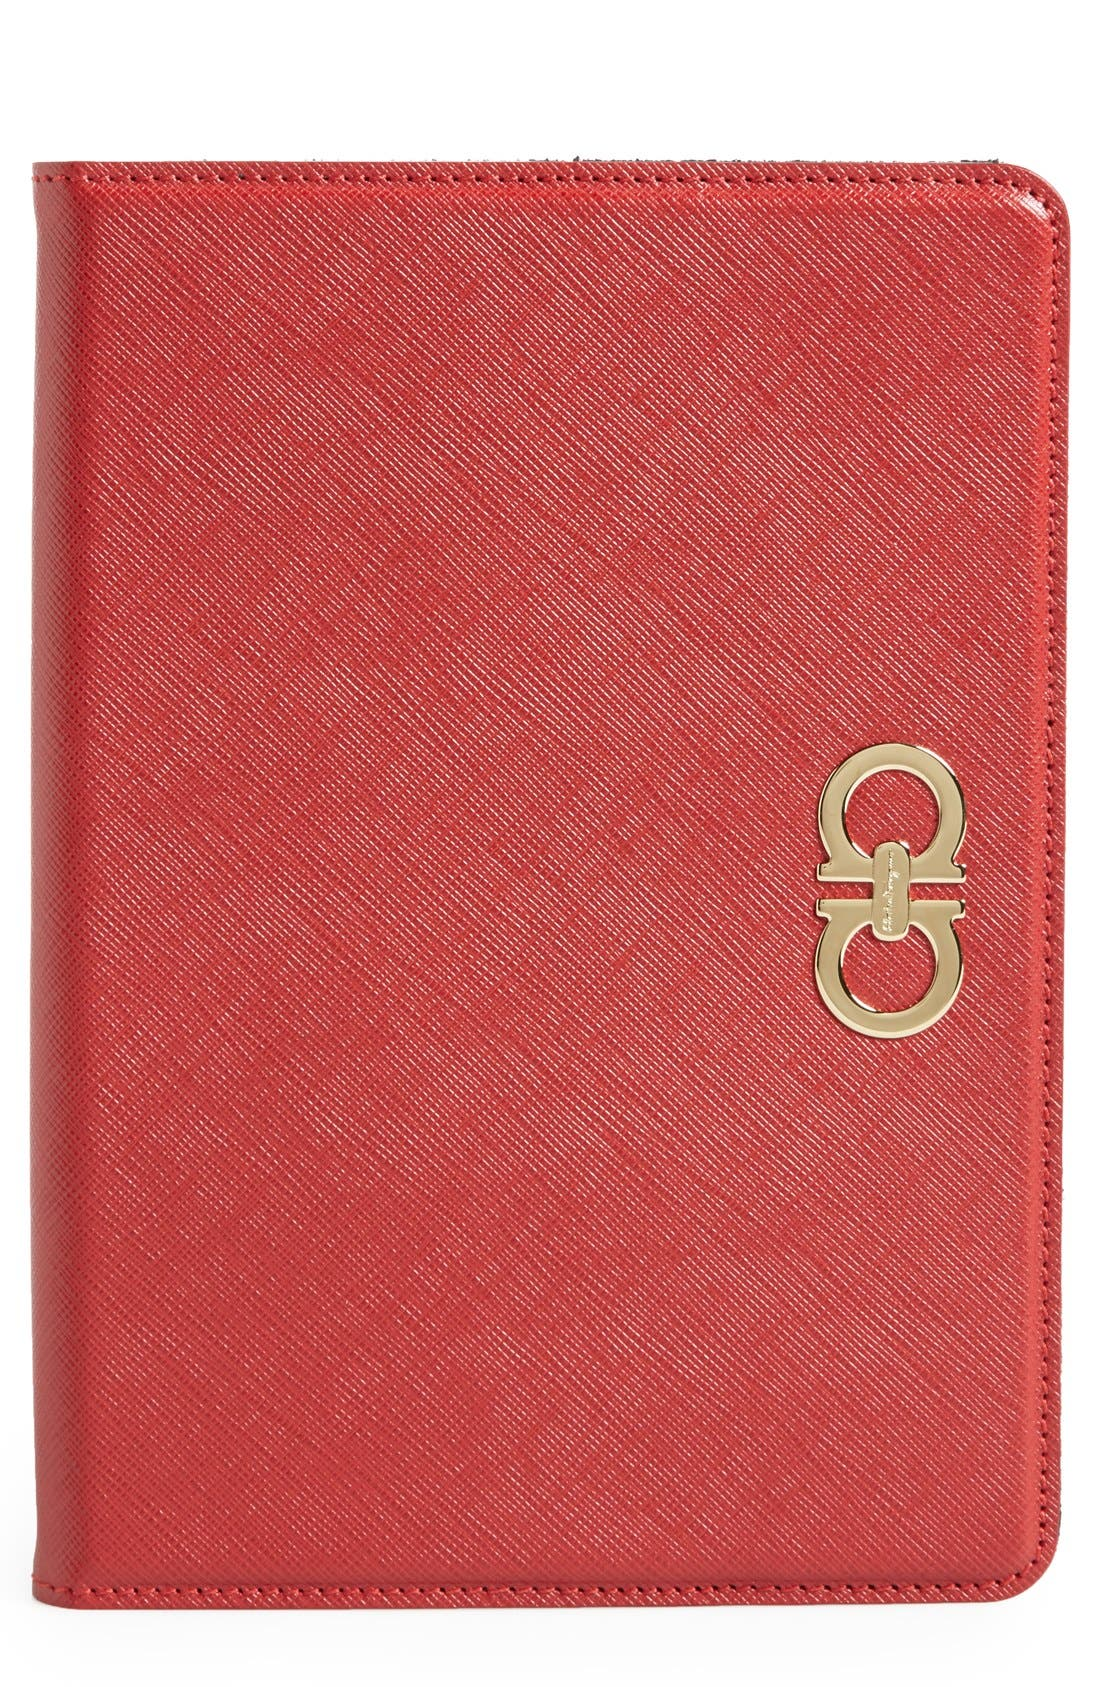 Alternate Image 1 Selected - Salvatore Ferragamo 'Gancini' Leather iPad mini Case